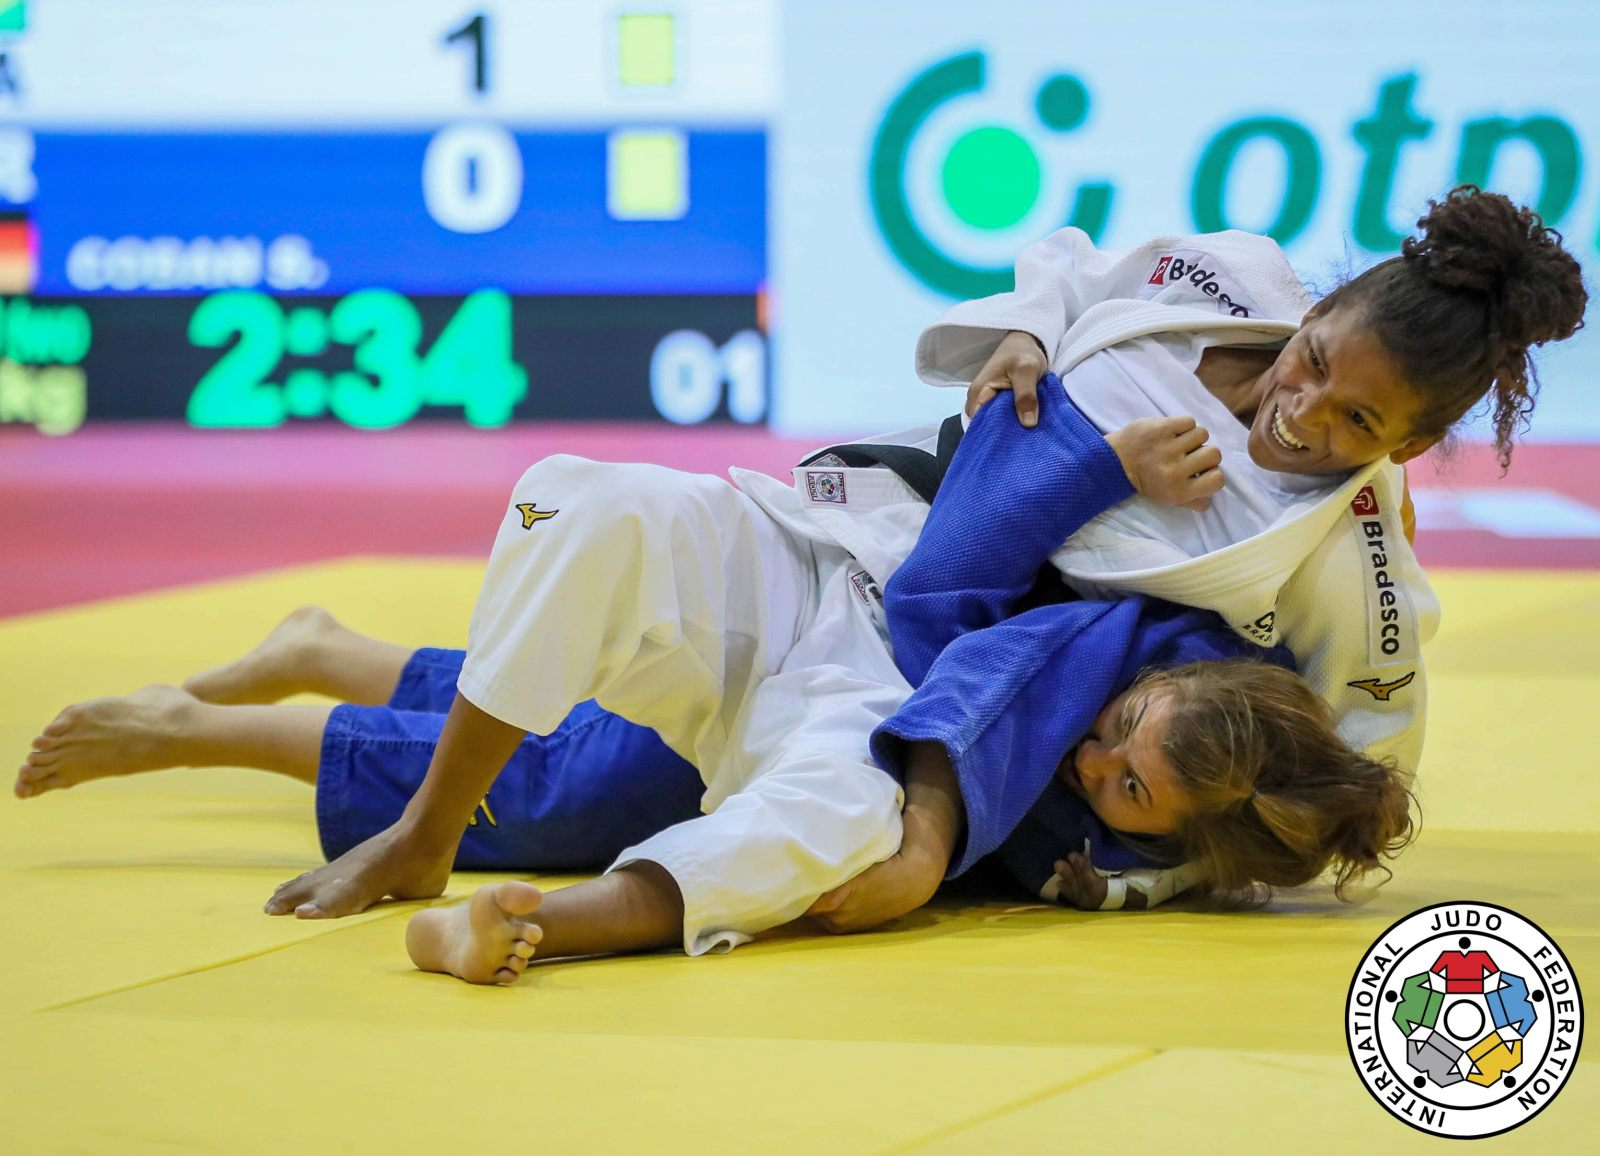 20181012_ijf_cancun_action_silva_rafaela_coban_sappho